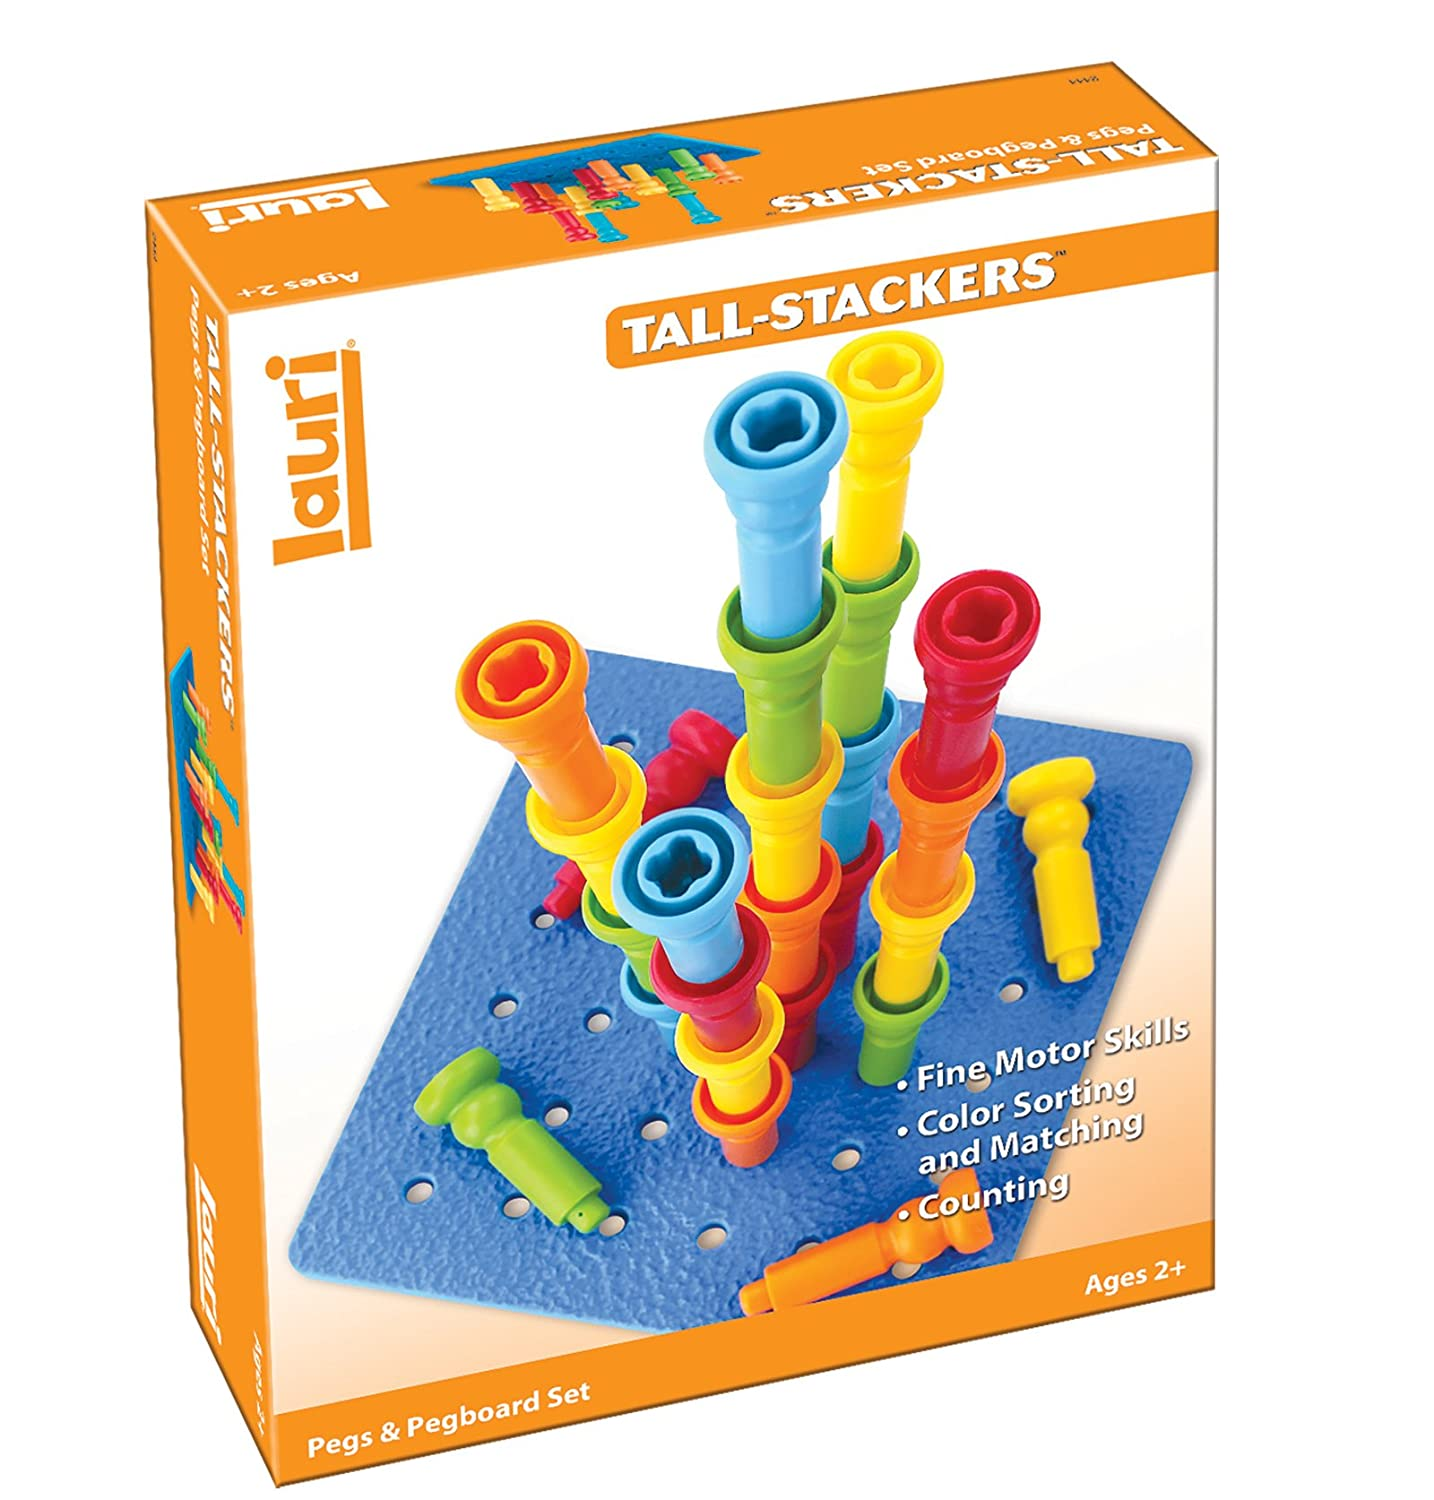 Amazon Lauri Tall Stackers Pegs and Pegboard Set Toys & Games